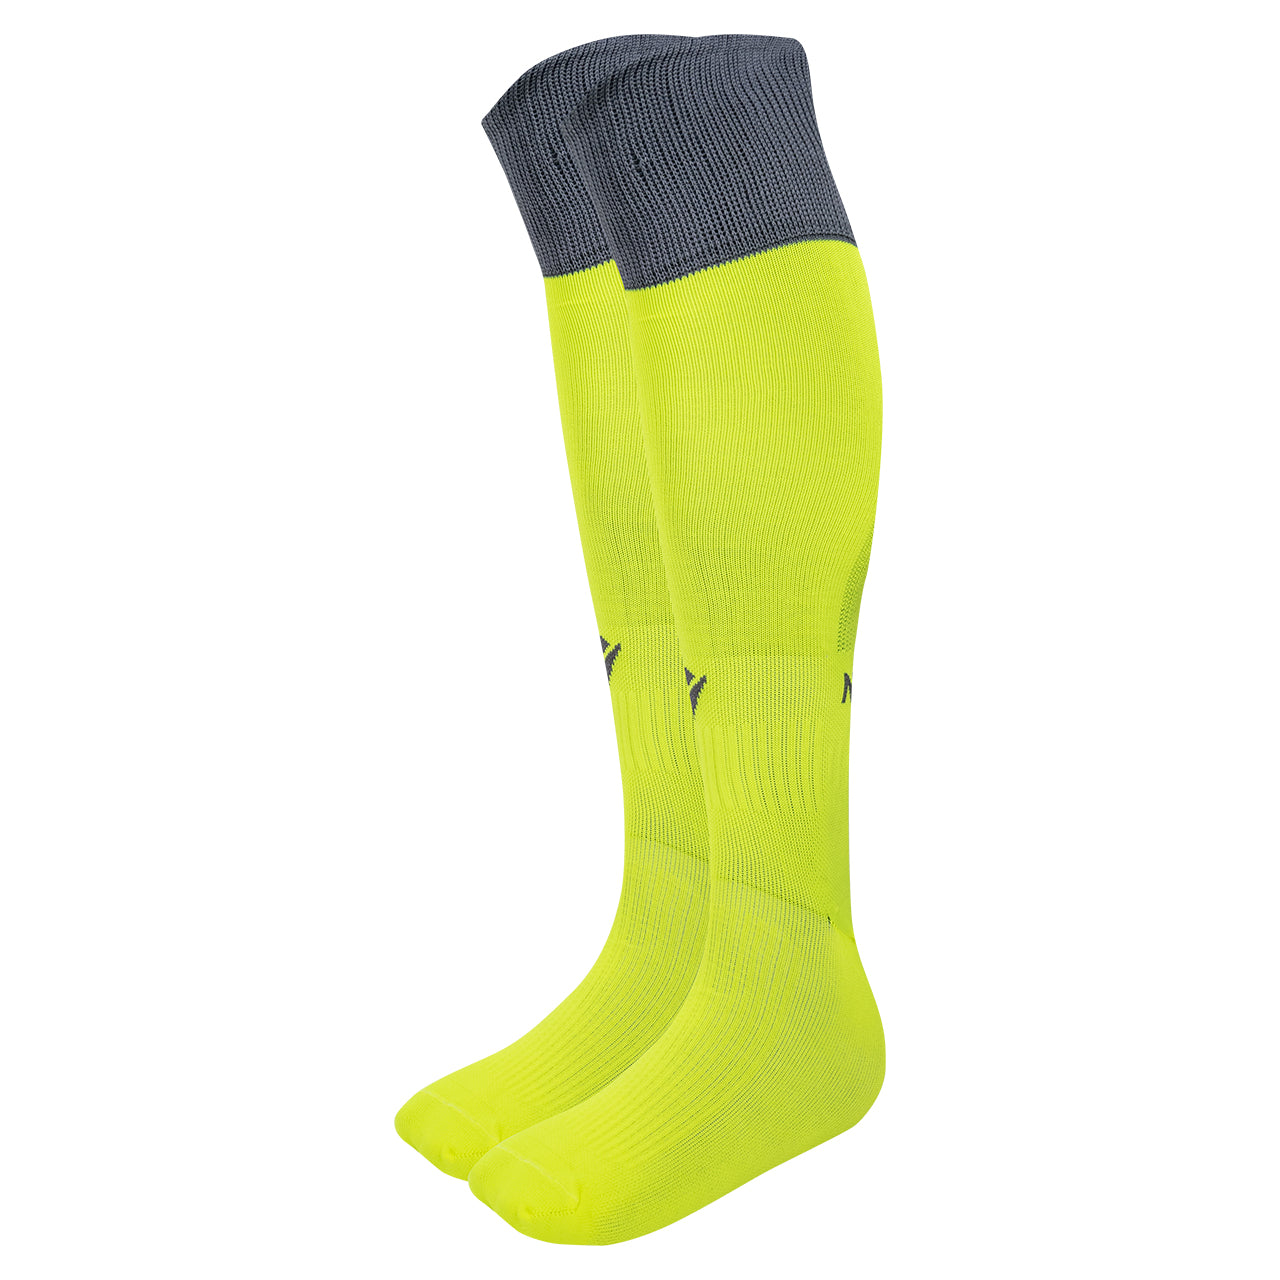 NFFC Mens Yellow Goalkeeper Socks 2020/21